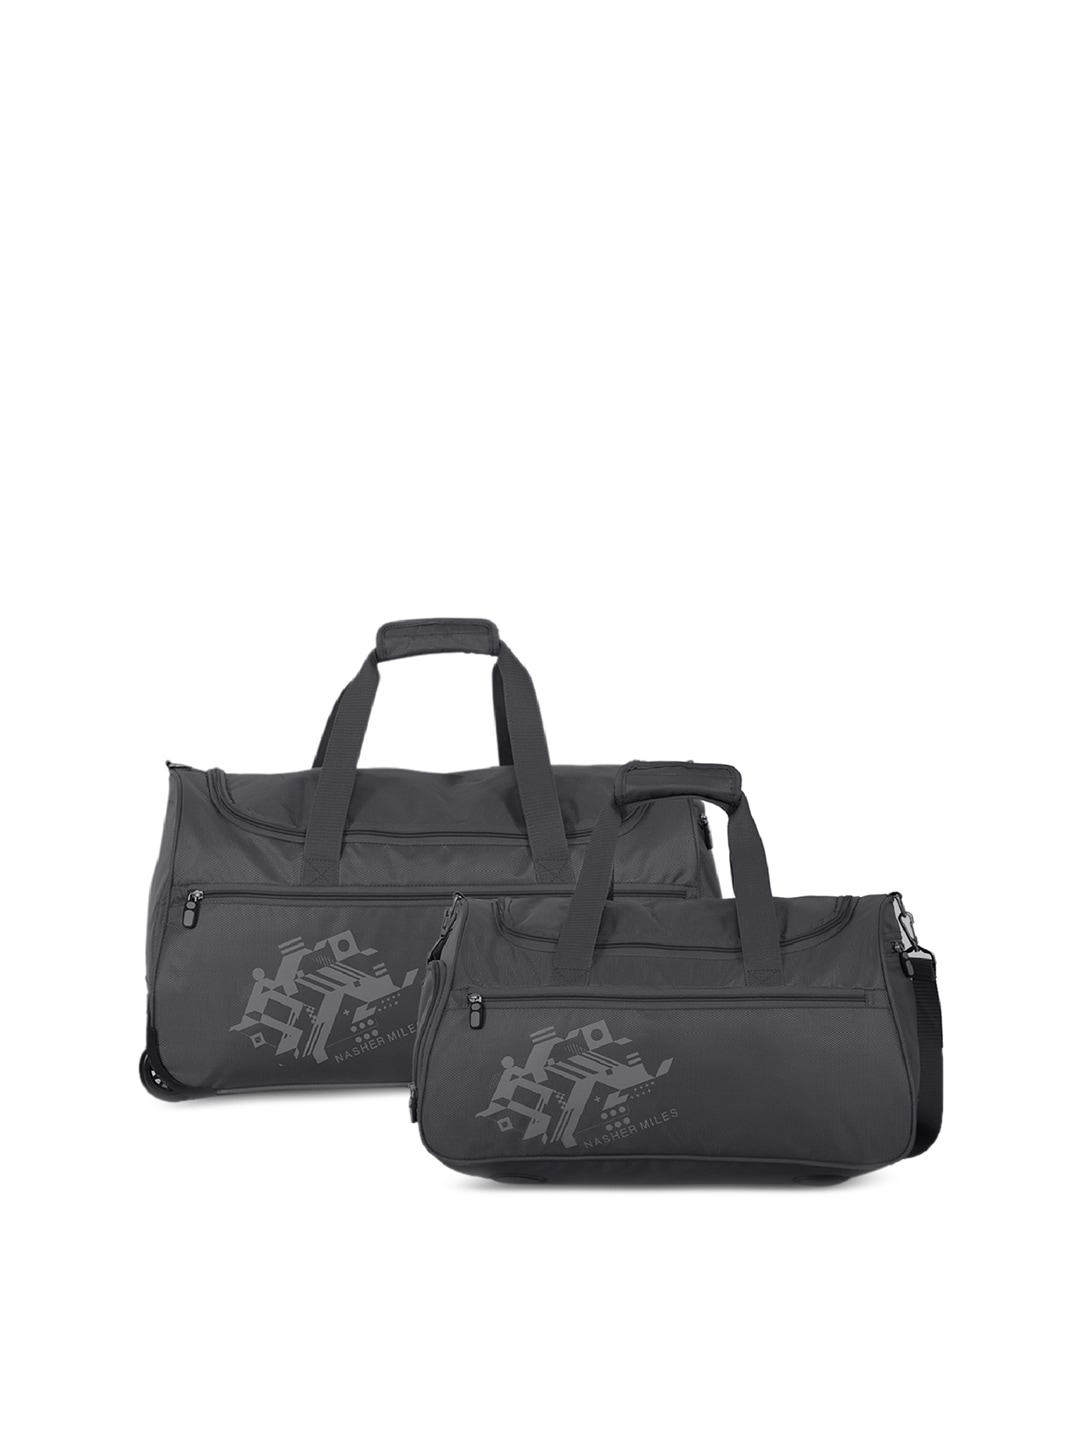 2114dbc50ce Travelling Na Bags - Buy Travelling Na Bags online in India